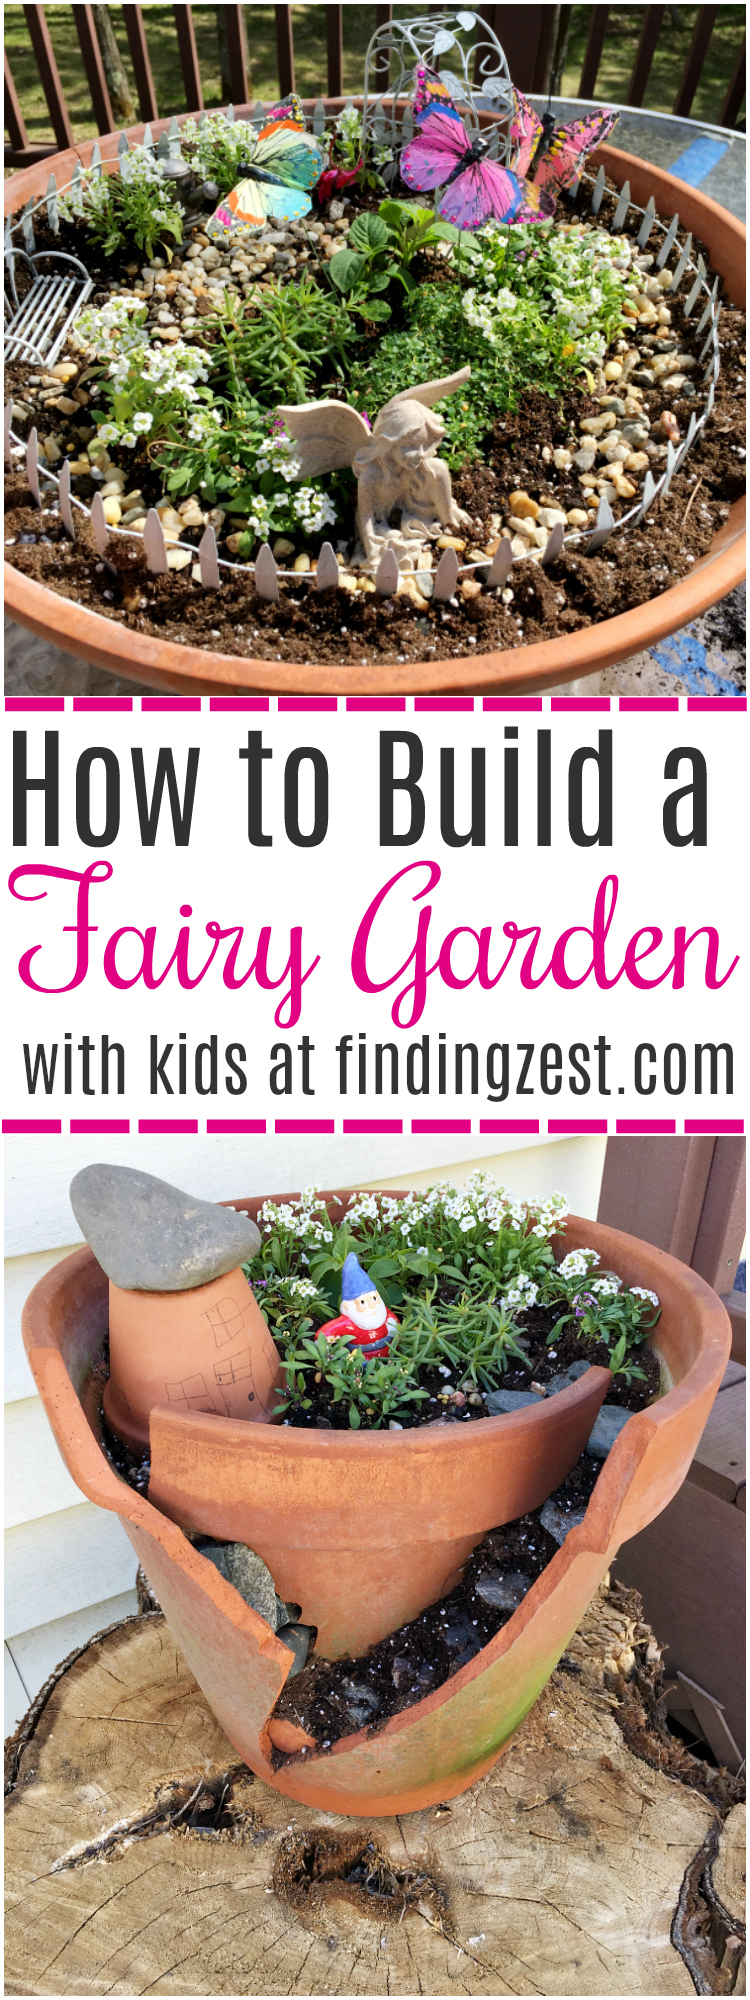 Learn how to build a fairy garden with kids in clay pots. This kids activity is a great opportunity to teach about plants while having fun! Learn how to make both styles including a fairy garden scene with butterflies and a gnome house with broken pot rock steps.